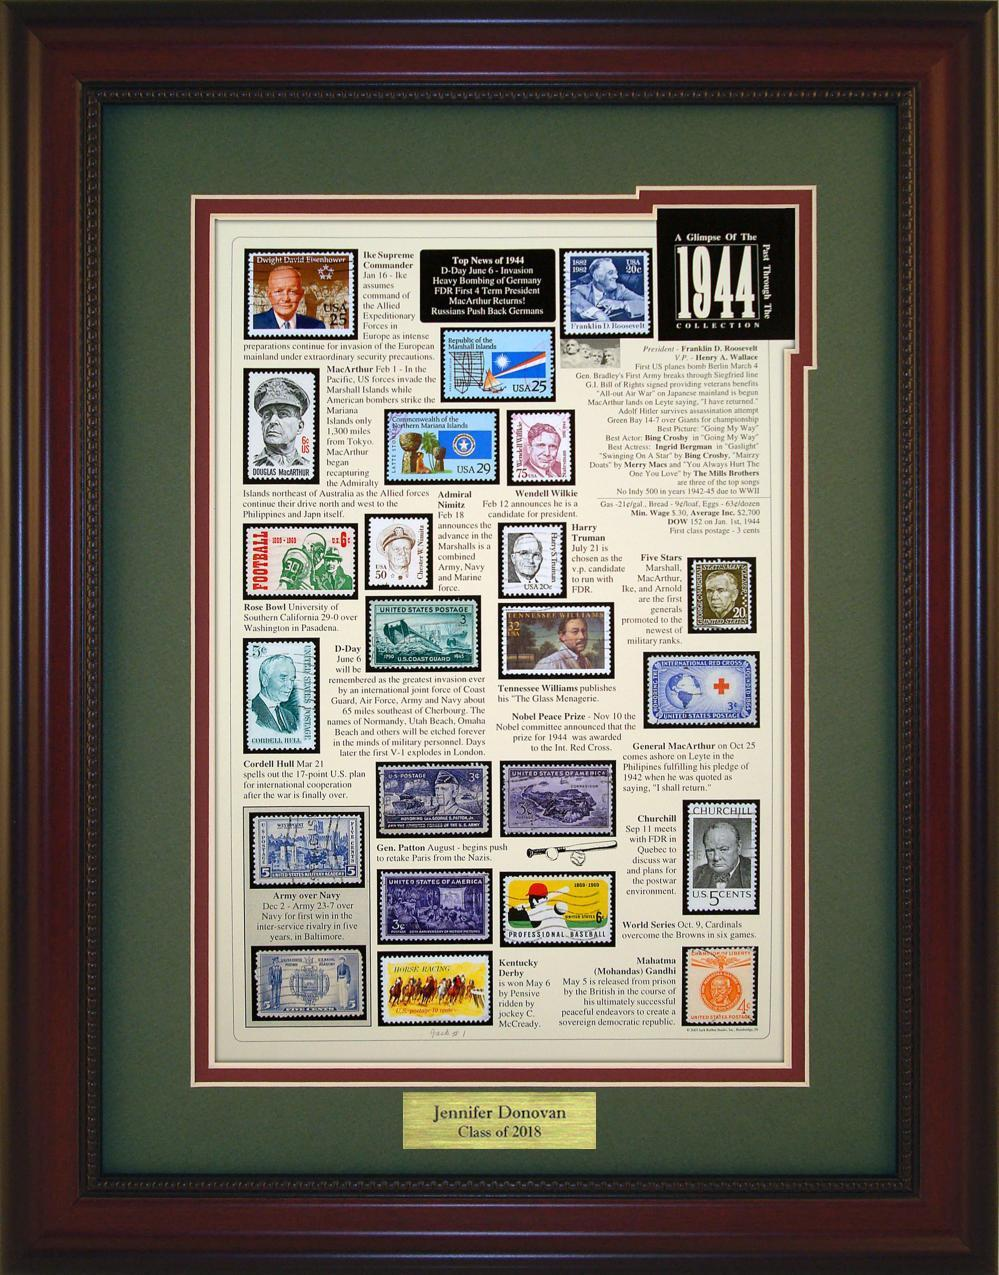 Year 1944 - Personalized Unique Framed Gift